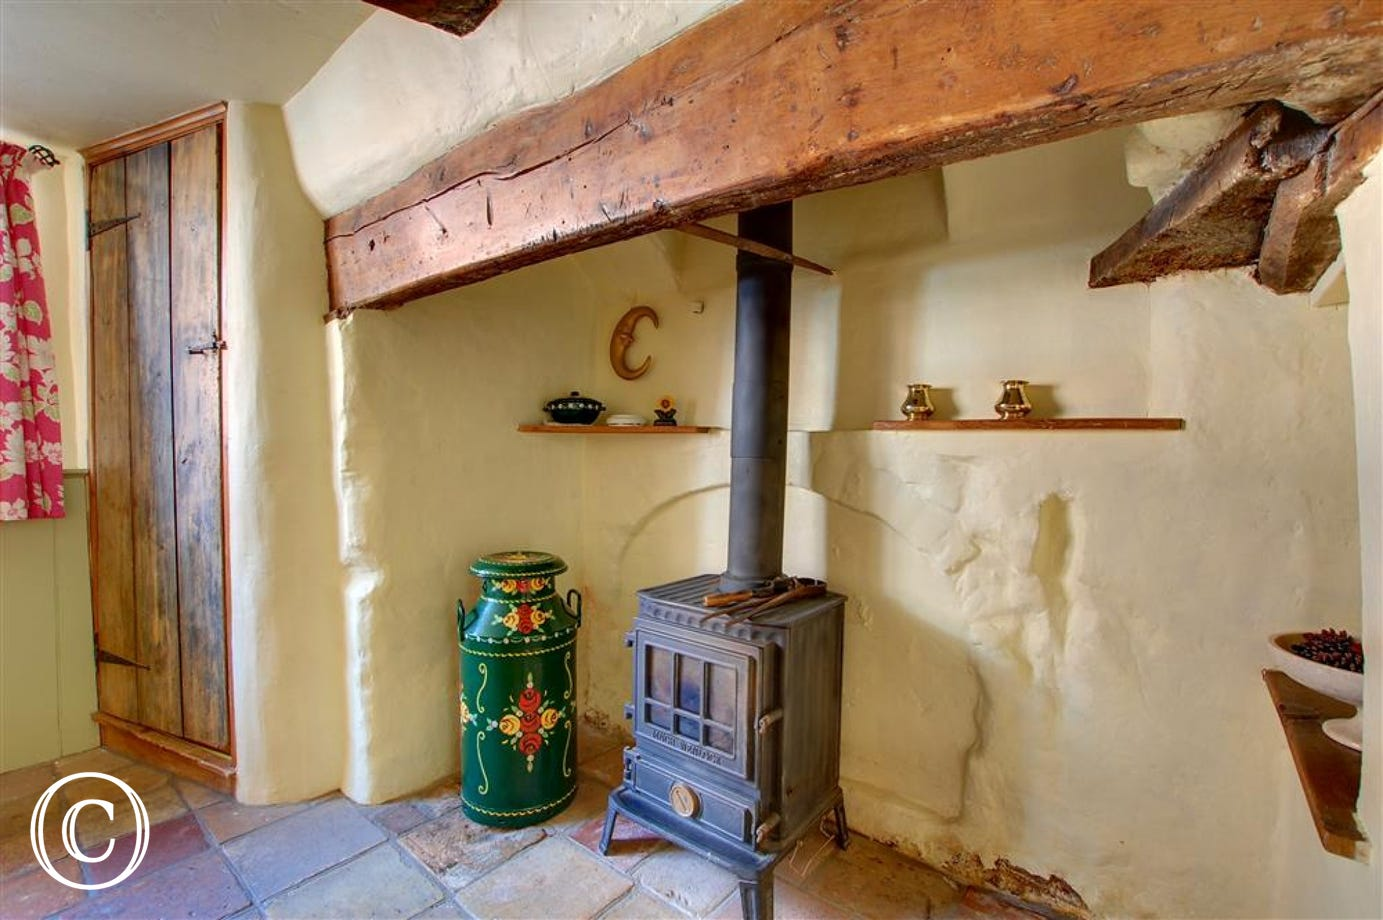 The little wood burner set in the large open fireplace of the dining room.